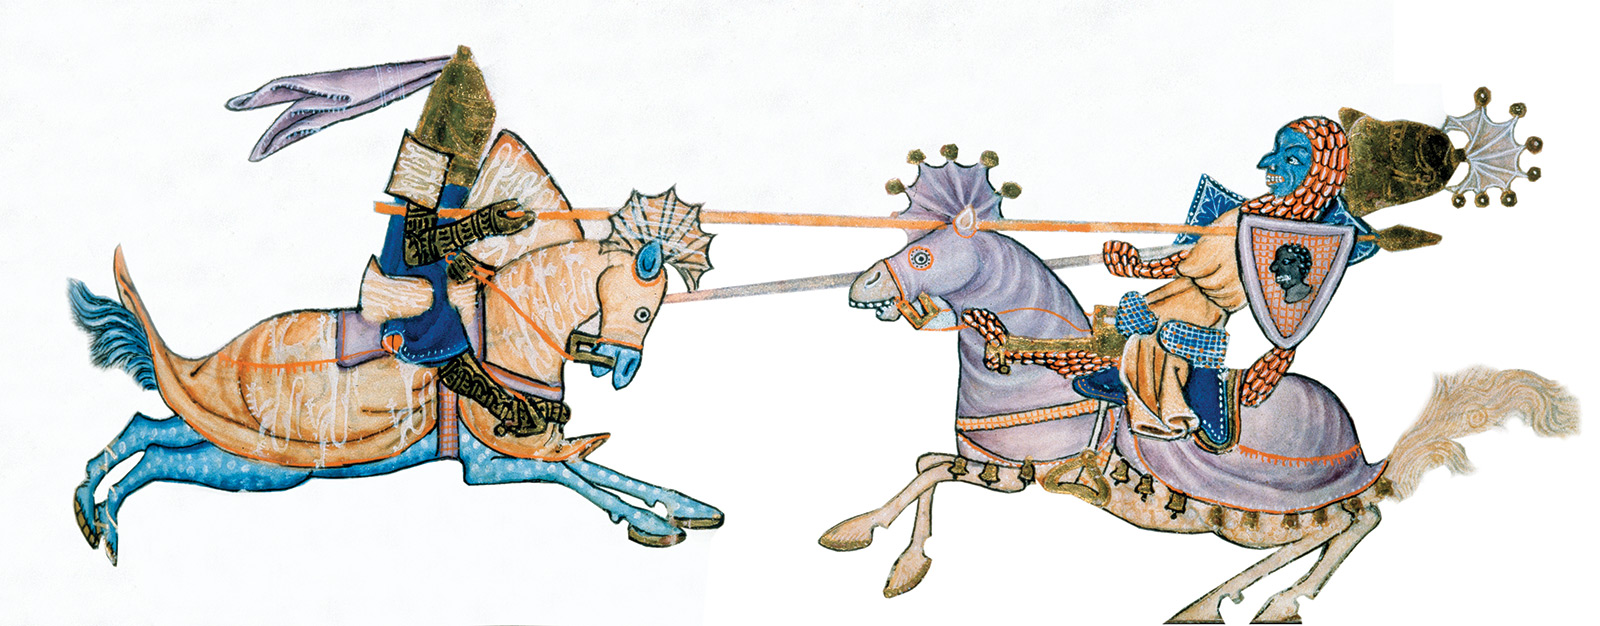 A joust between a crusader (left) and a Muslim, from the Luttrell Psalter, c.1340. Corpus Christ College.